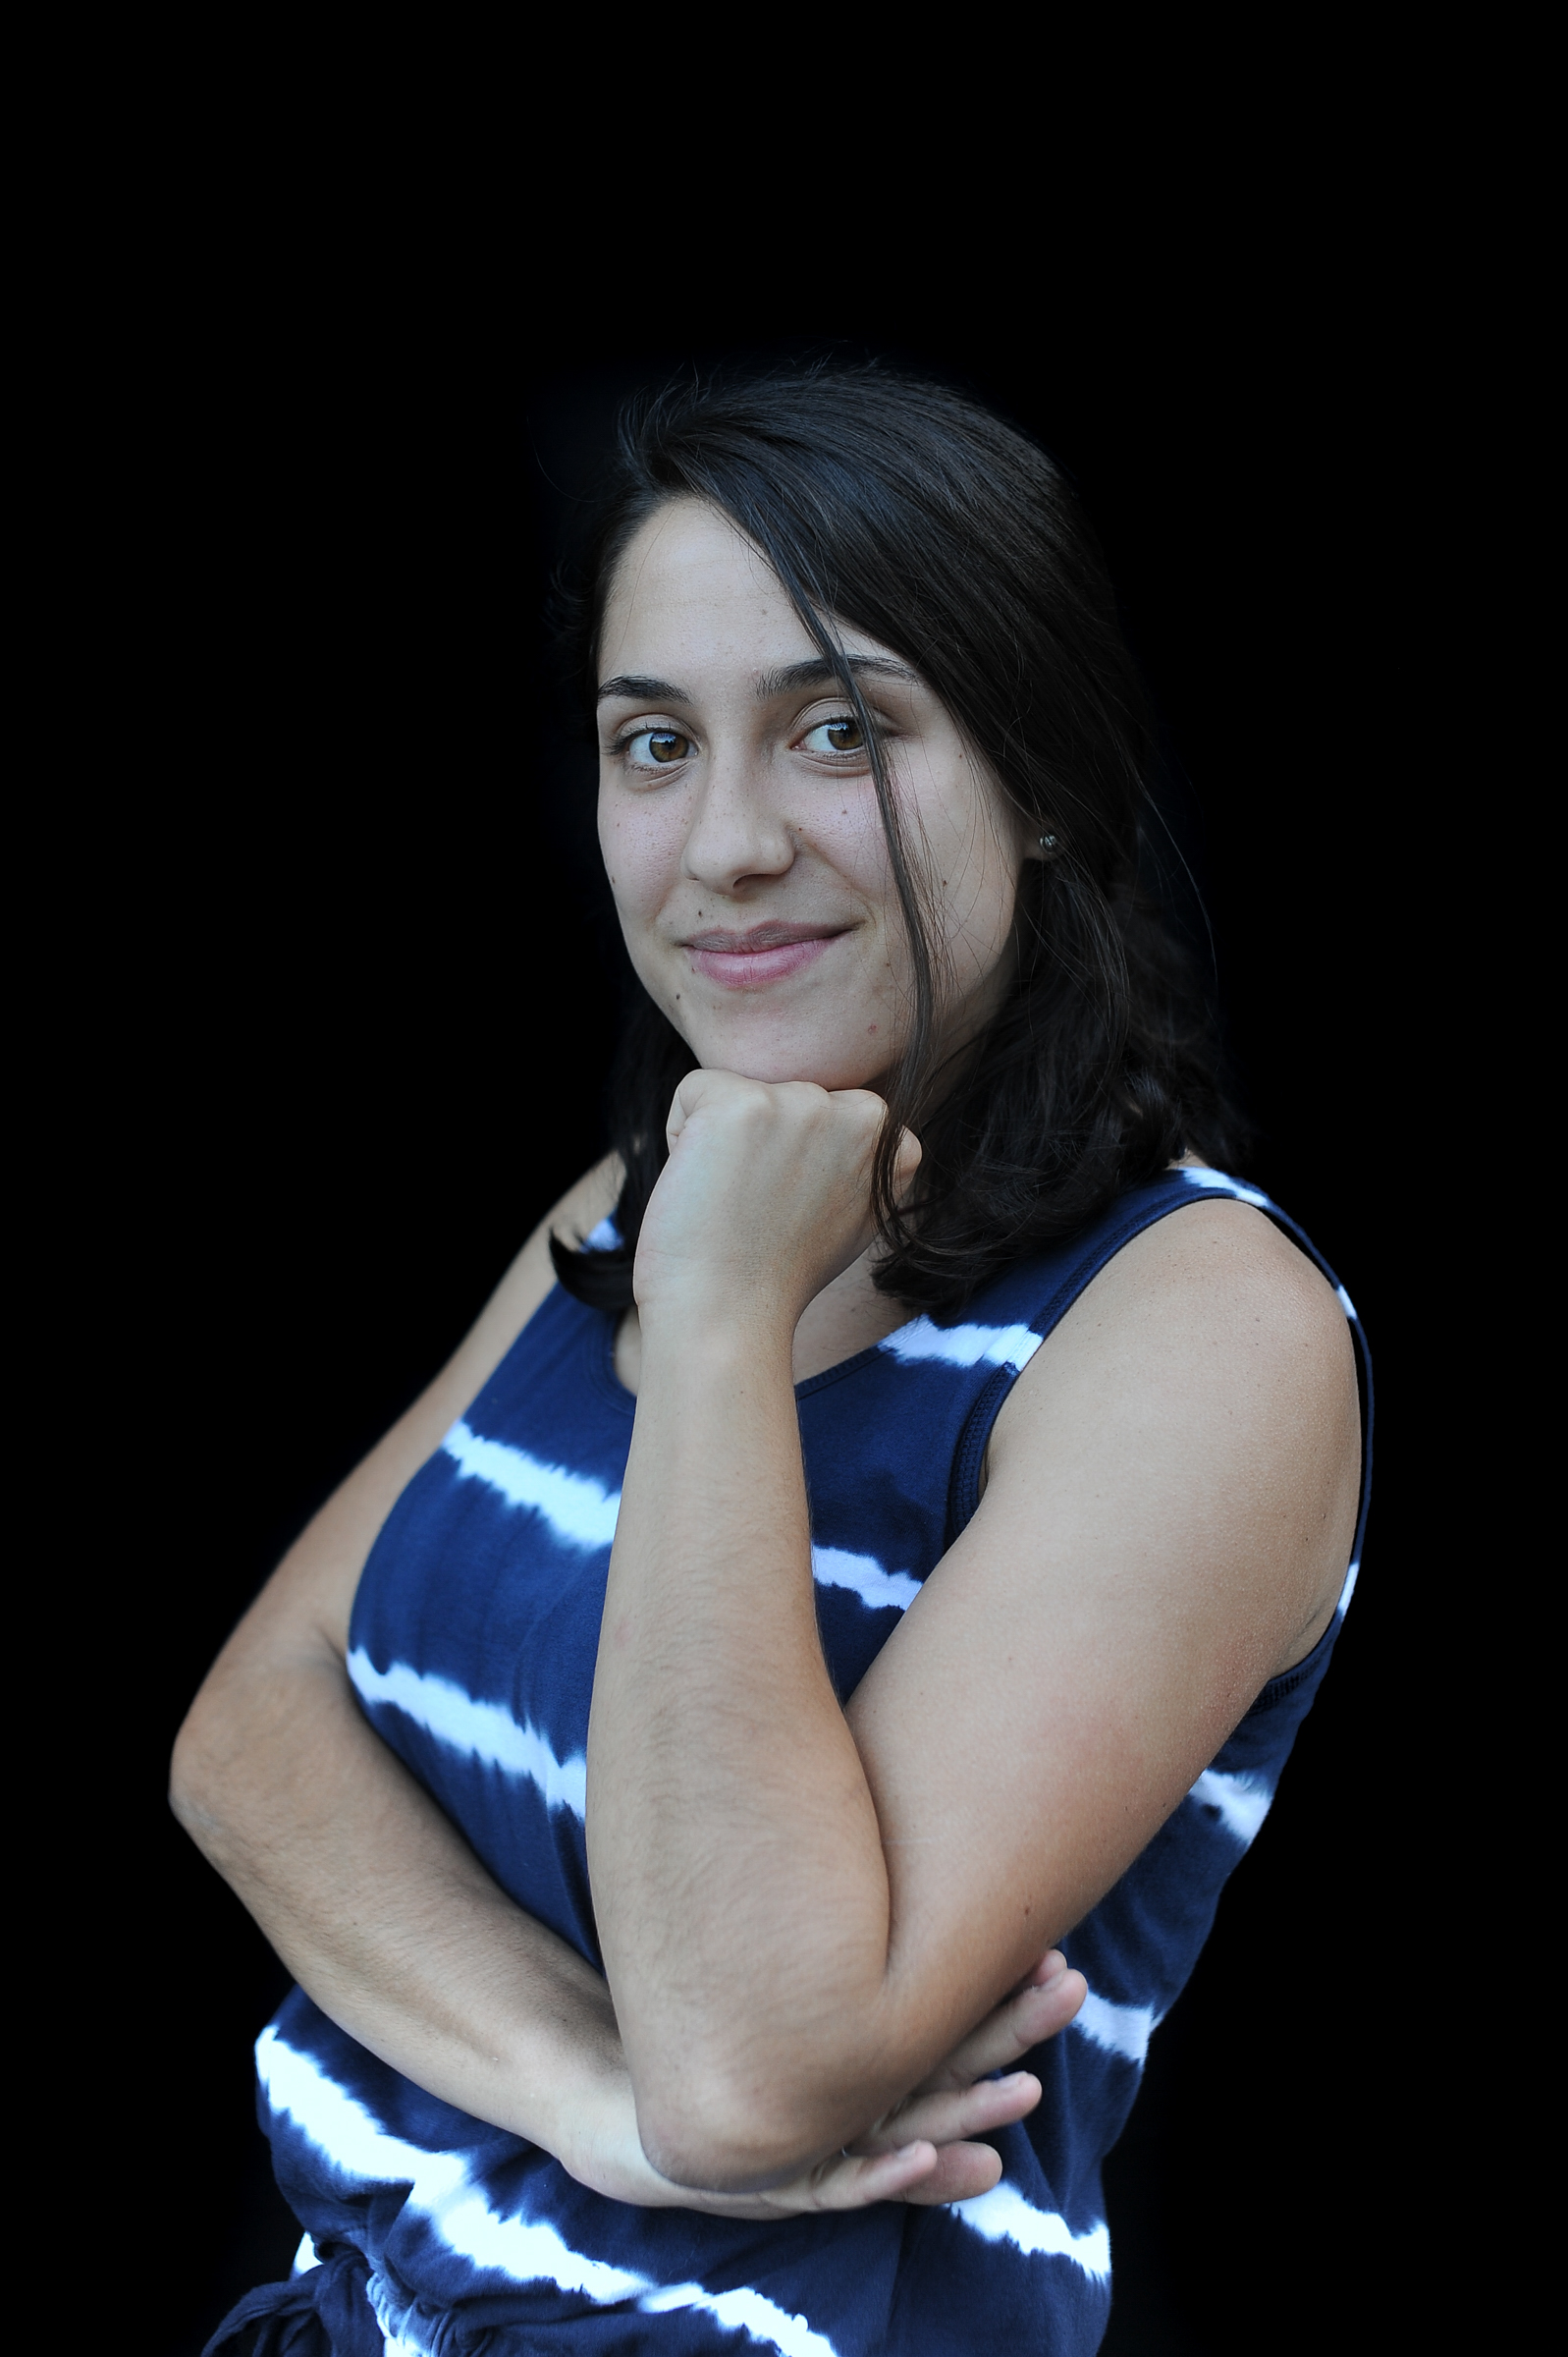 Name: Isabelle De BrabanterClass Year: 2019Major: Information Science and FrenchHometown: North Caldwell, NJActivities: Political Director of Cornell Democrats, VP of PR for KaPi, Social Justice Committee for HillelIf you could make up a major, what would it be?: Robotics/Artificial IntelligenceWhy would you be on the front page of The Cornell Daily Sun?: International EspionageBlurb: Je vois la vie en rose